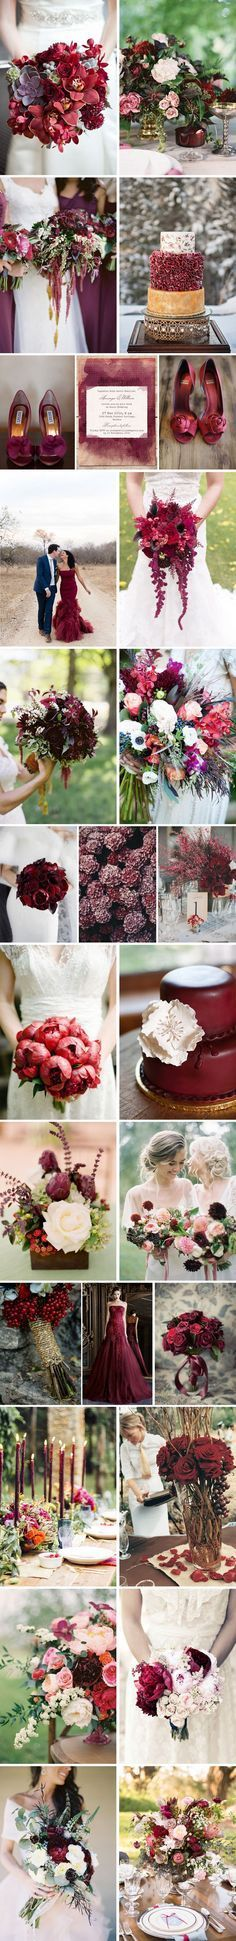 Classic Fall Wedding Color Ideas ❤︎ #burgundy #white #wedding